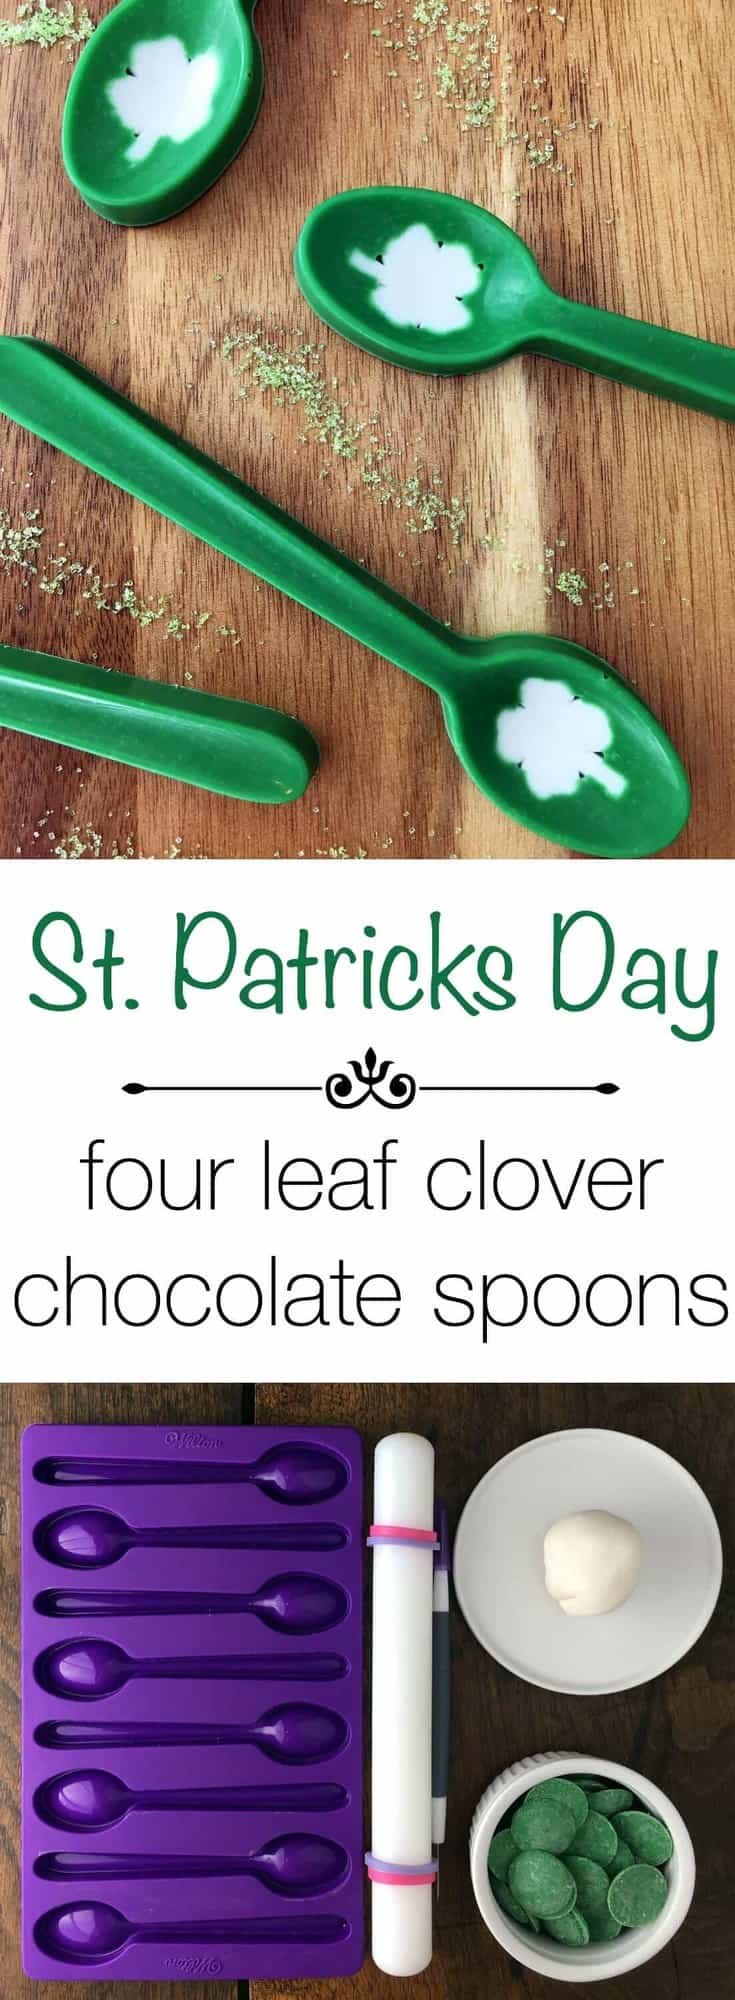 St. Patrick's Day Four Leaf Clover Chocolate Spoons